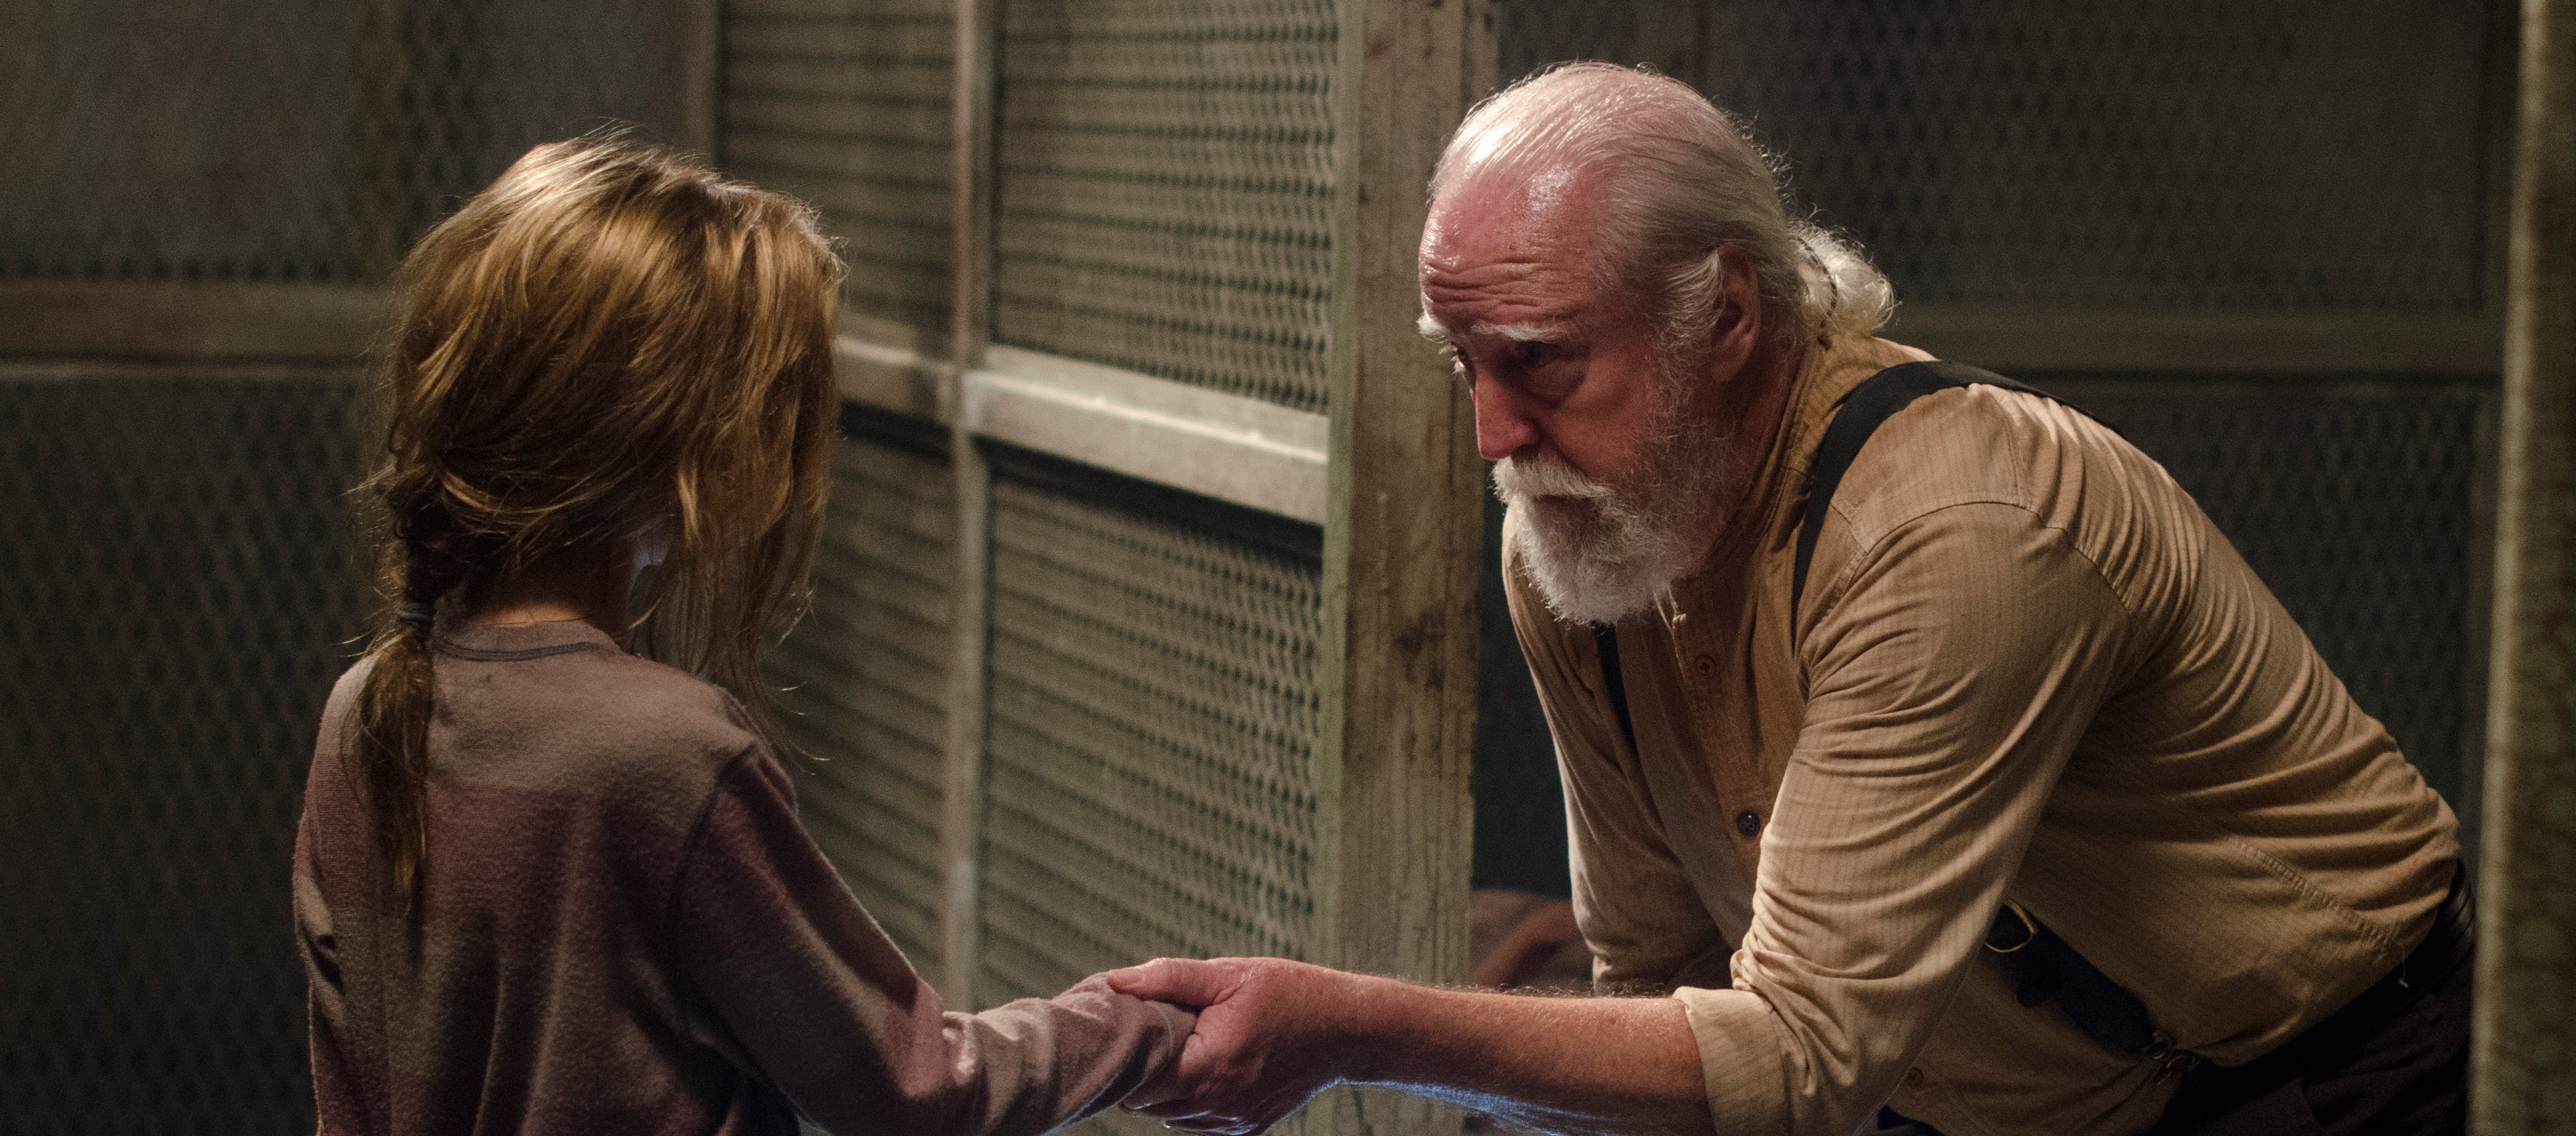 REVIEW S04E05 - Internment: A Luta de Hershel